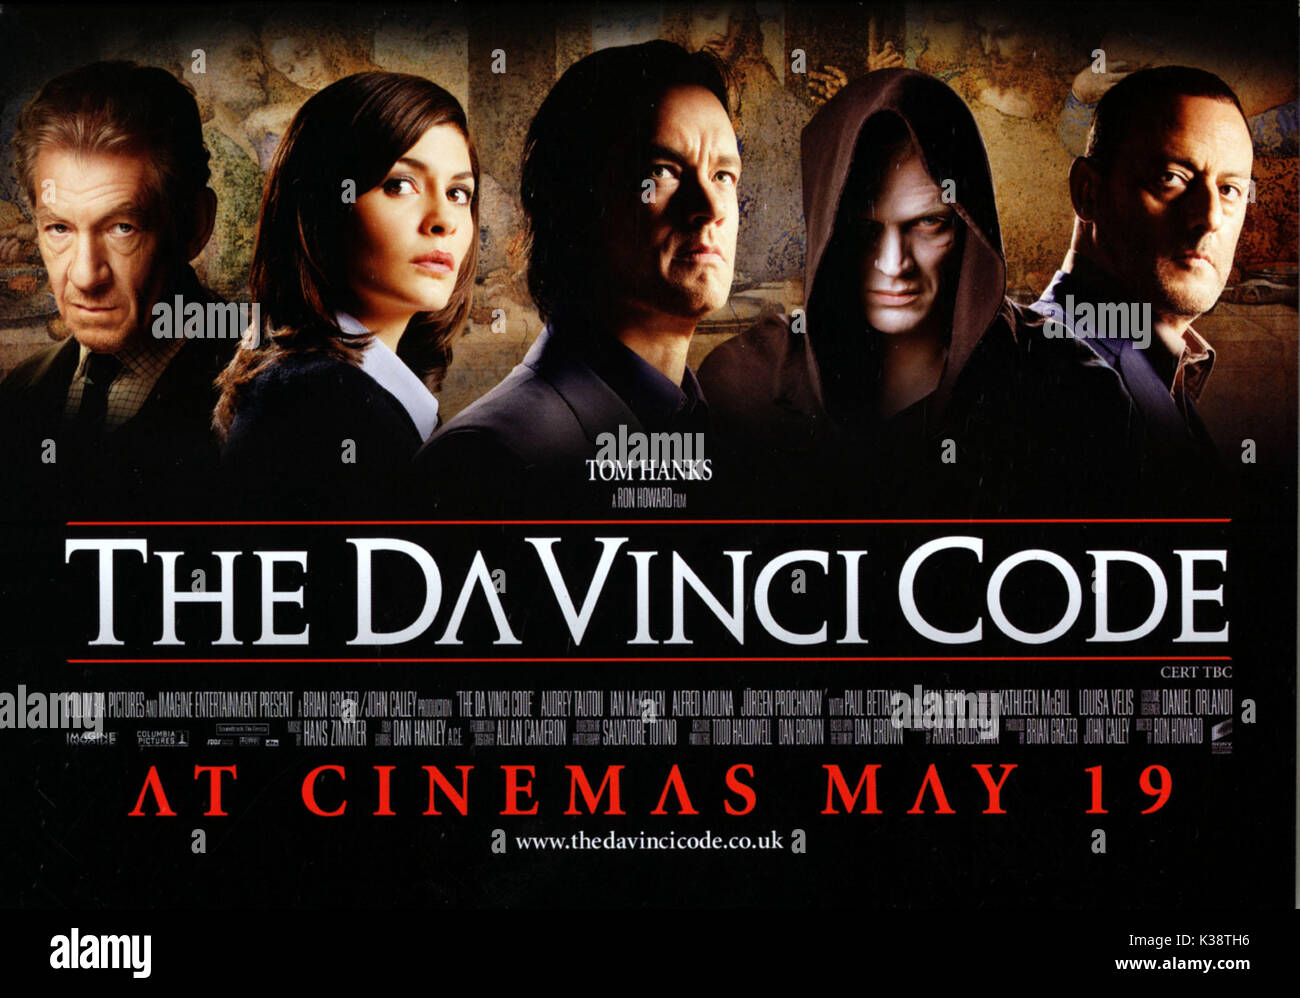 The Da Vinci Code Date 2006 Stock Photo Alamy